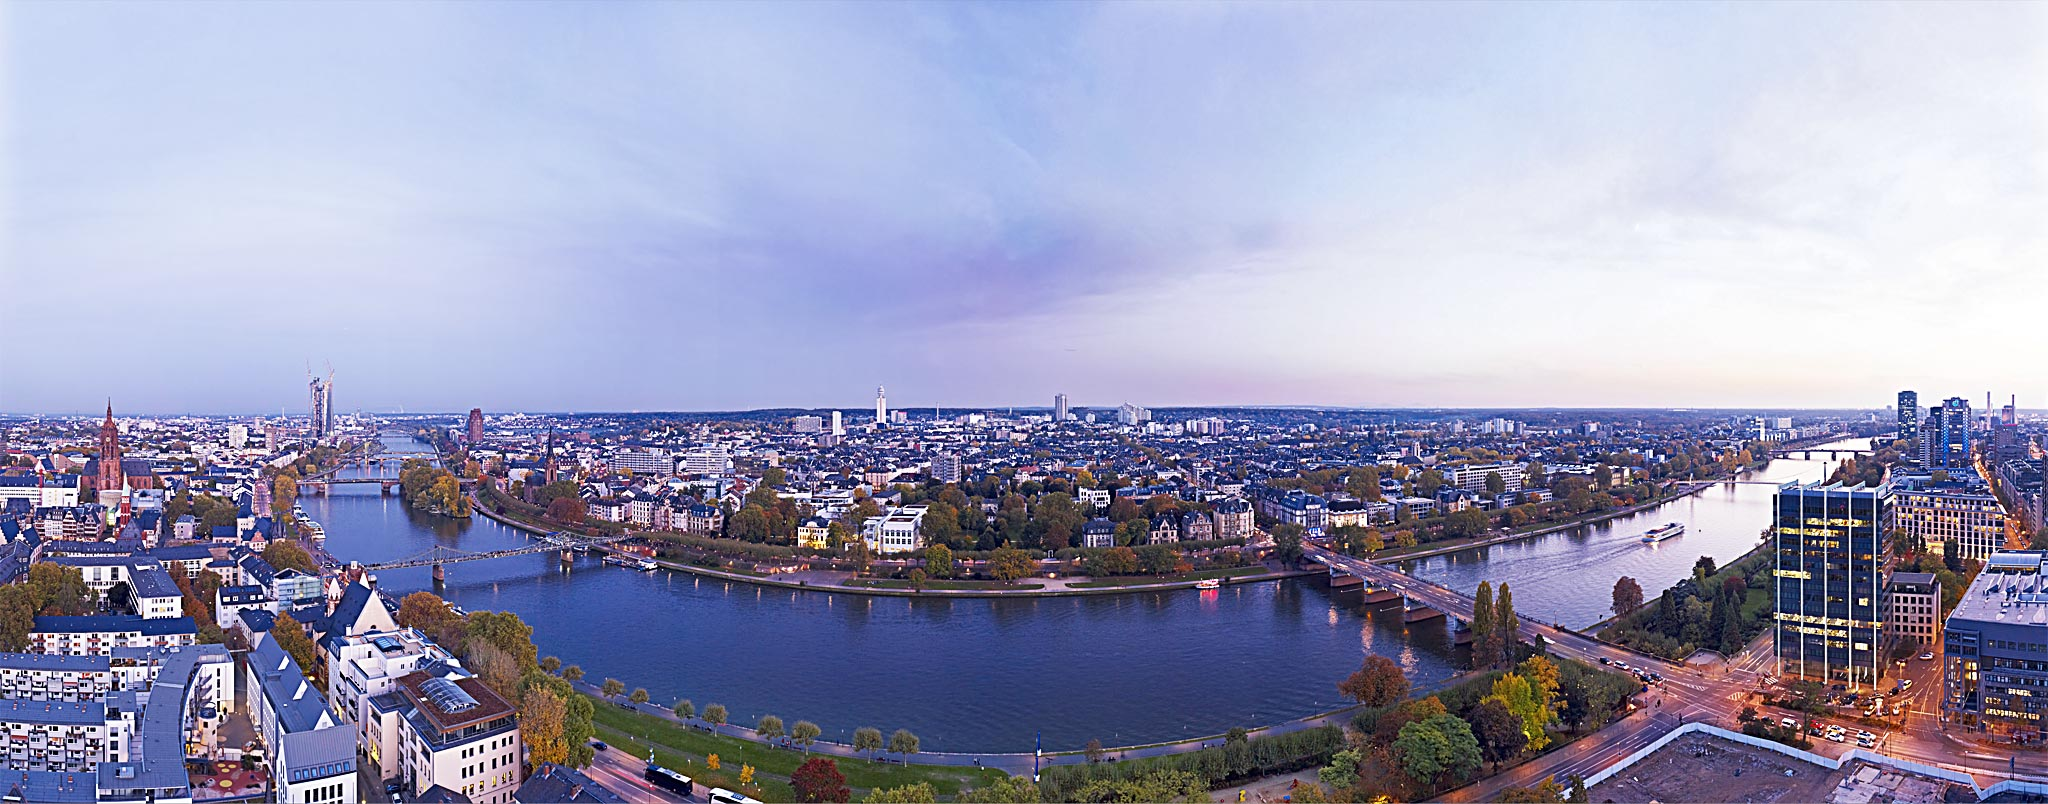 Panorama of Sachsenhausen in Frankfurt am Main in the evening